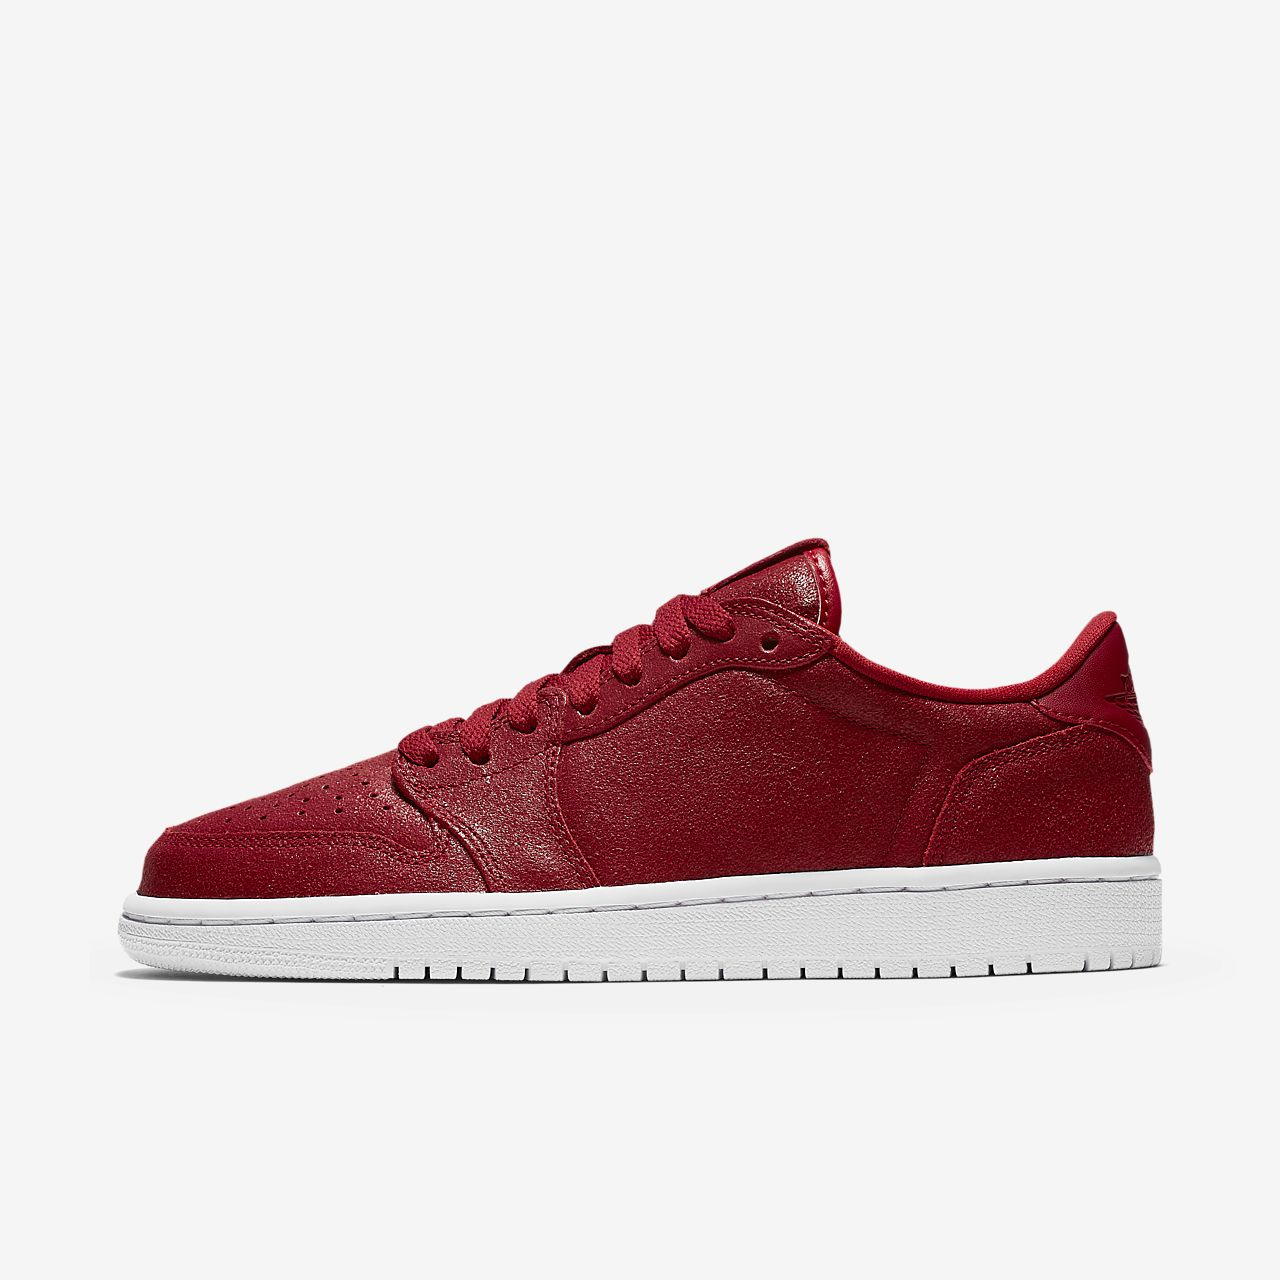 Air Jordan 1 Retro Low NS Women s Shoe. Nike.com GB 694efe2292